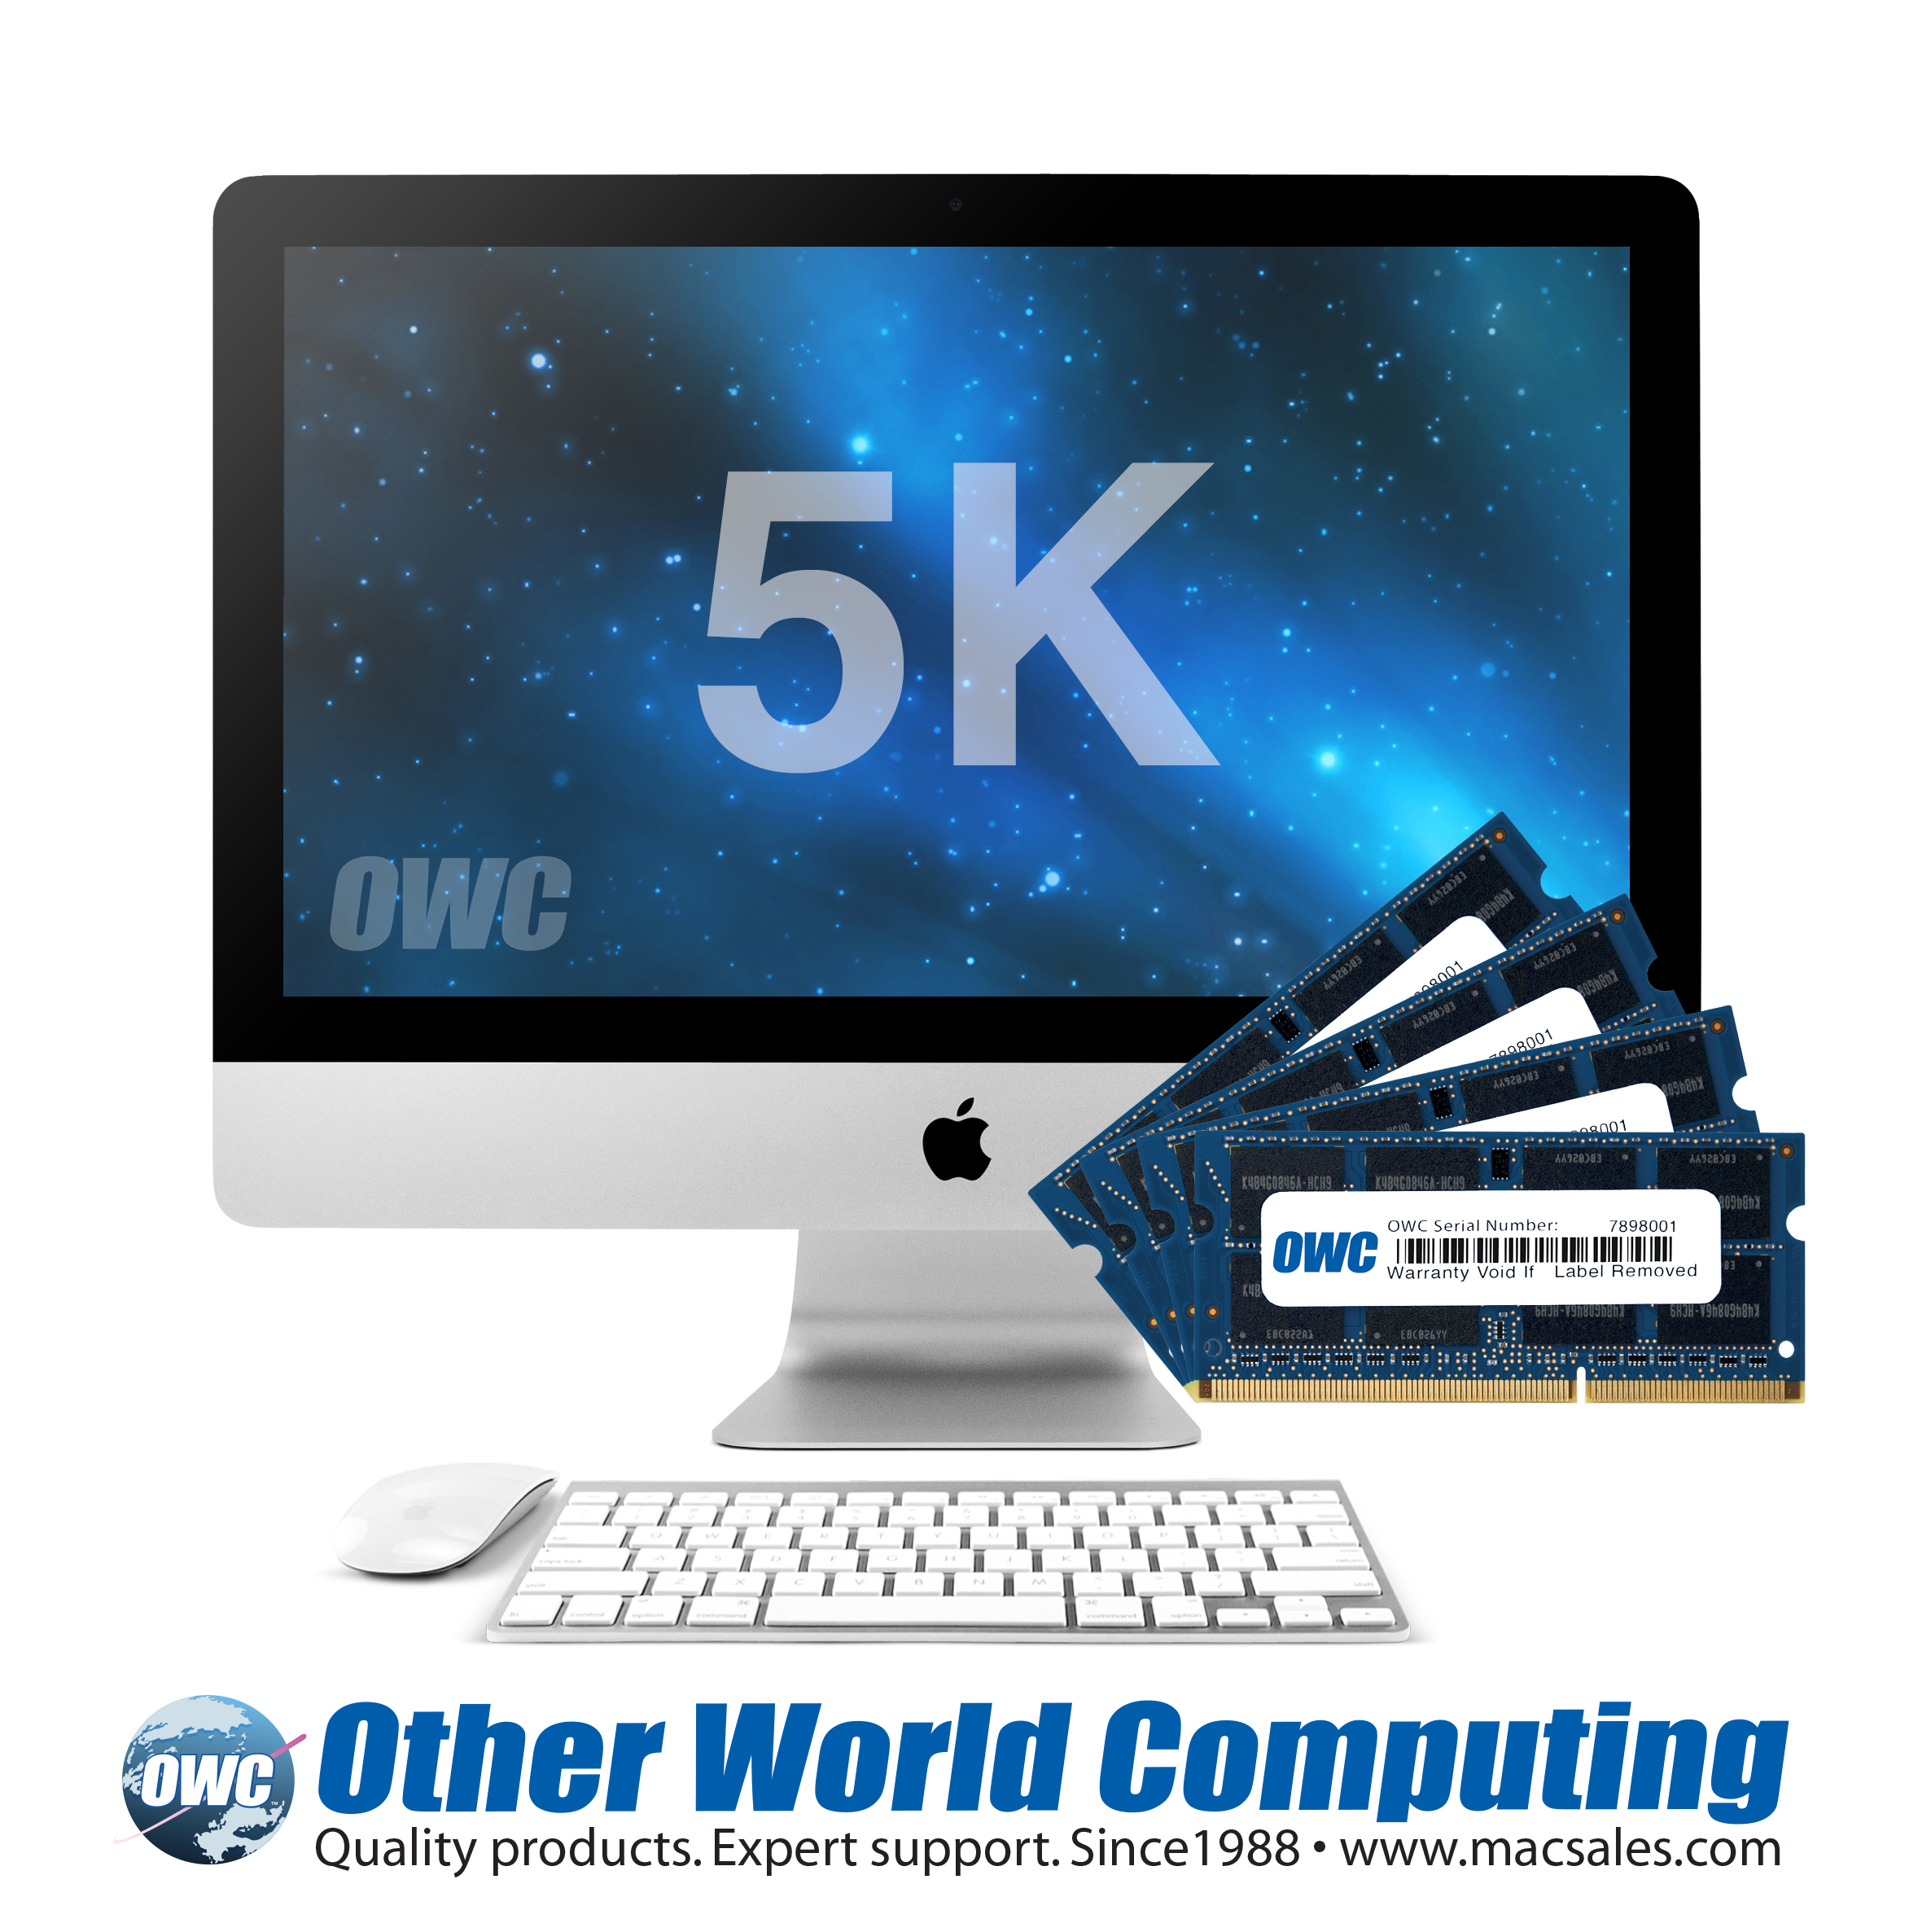 owc announces availability of memory and drive upgrades for latest apple imac with retina k display savings up to vs factory